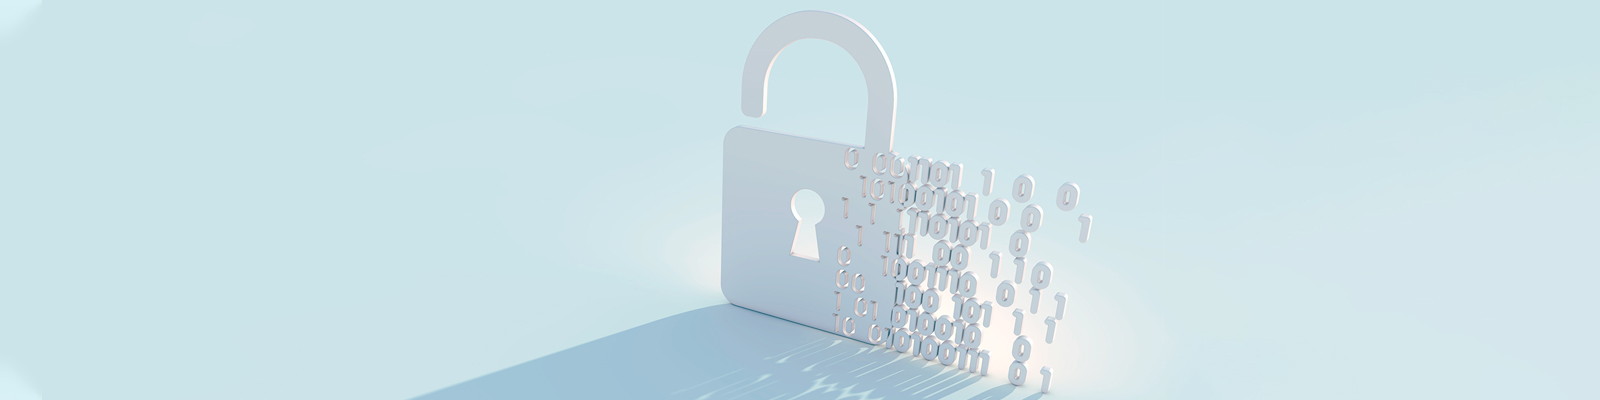 Information Security as a Management Strategy in the DX Era